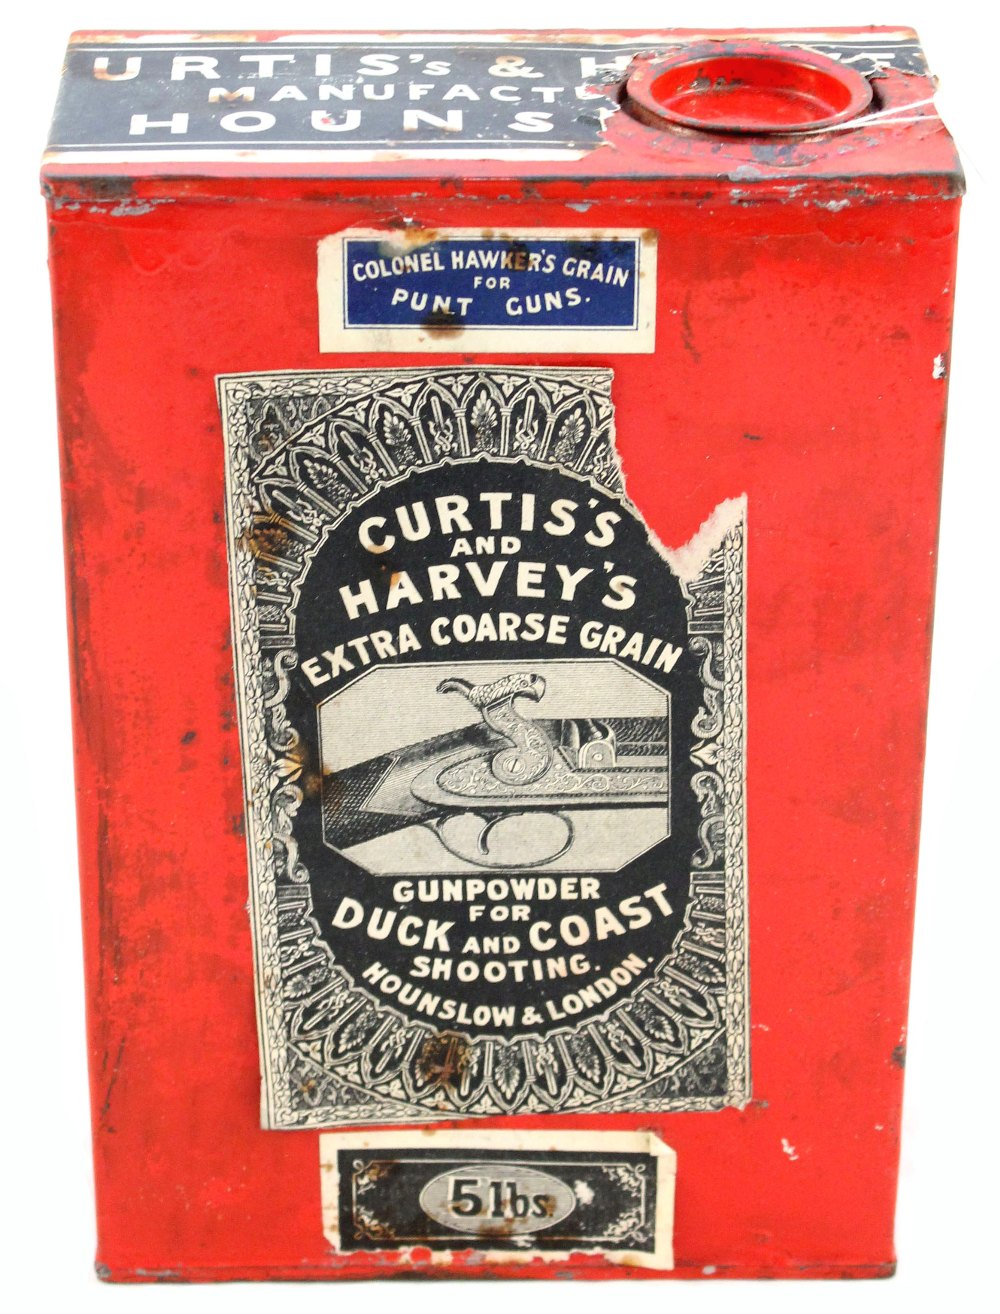 Lot 48 - A Curtis's and Harveys 5lb tin for extra coarse grain gunpowder for duck and coast shooting (empty)